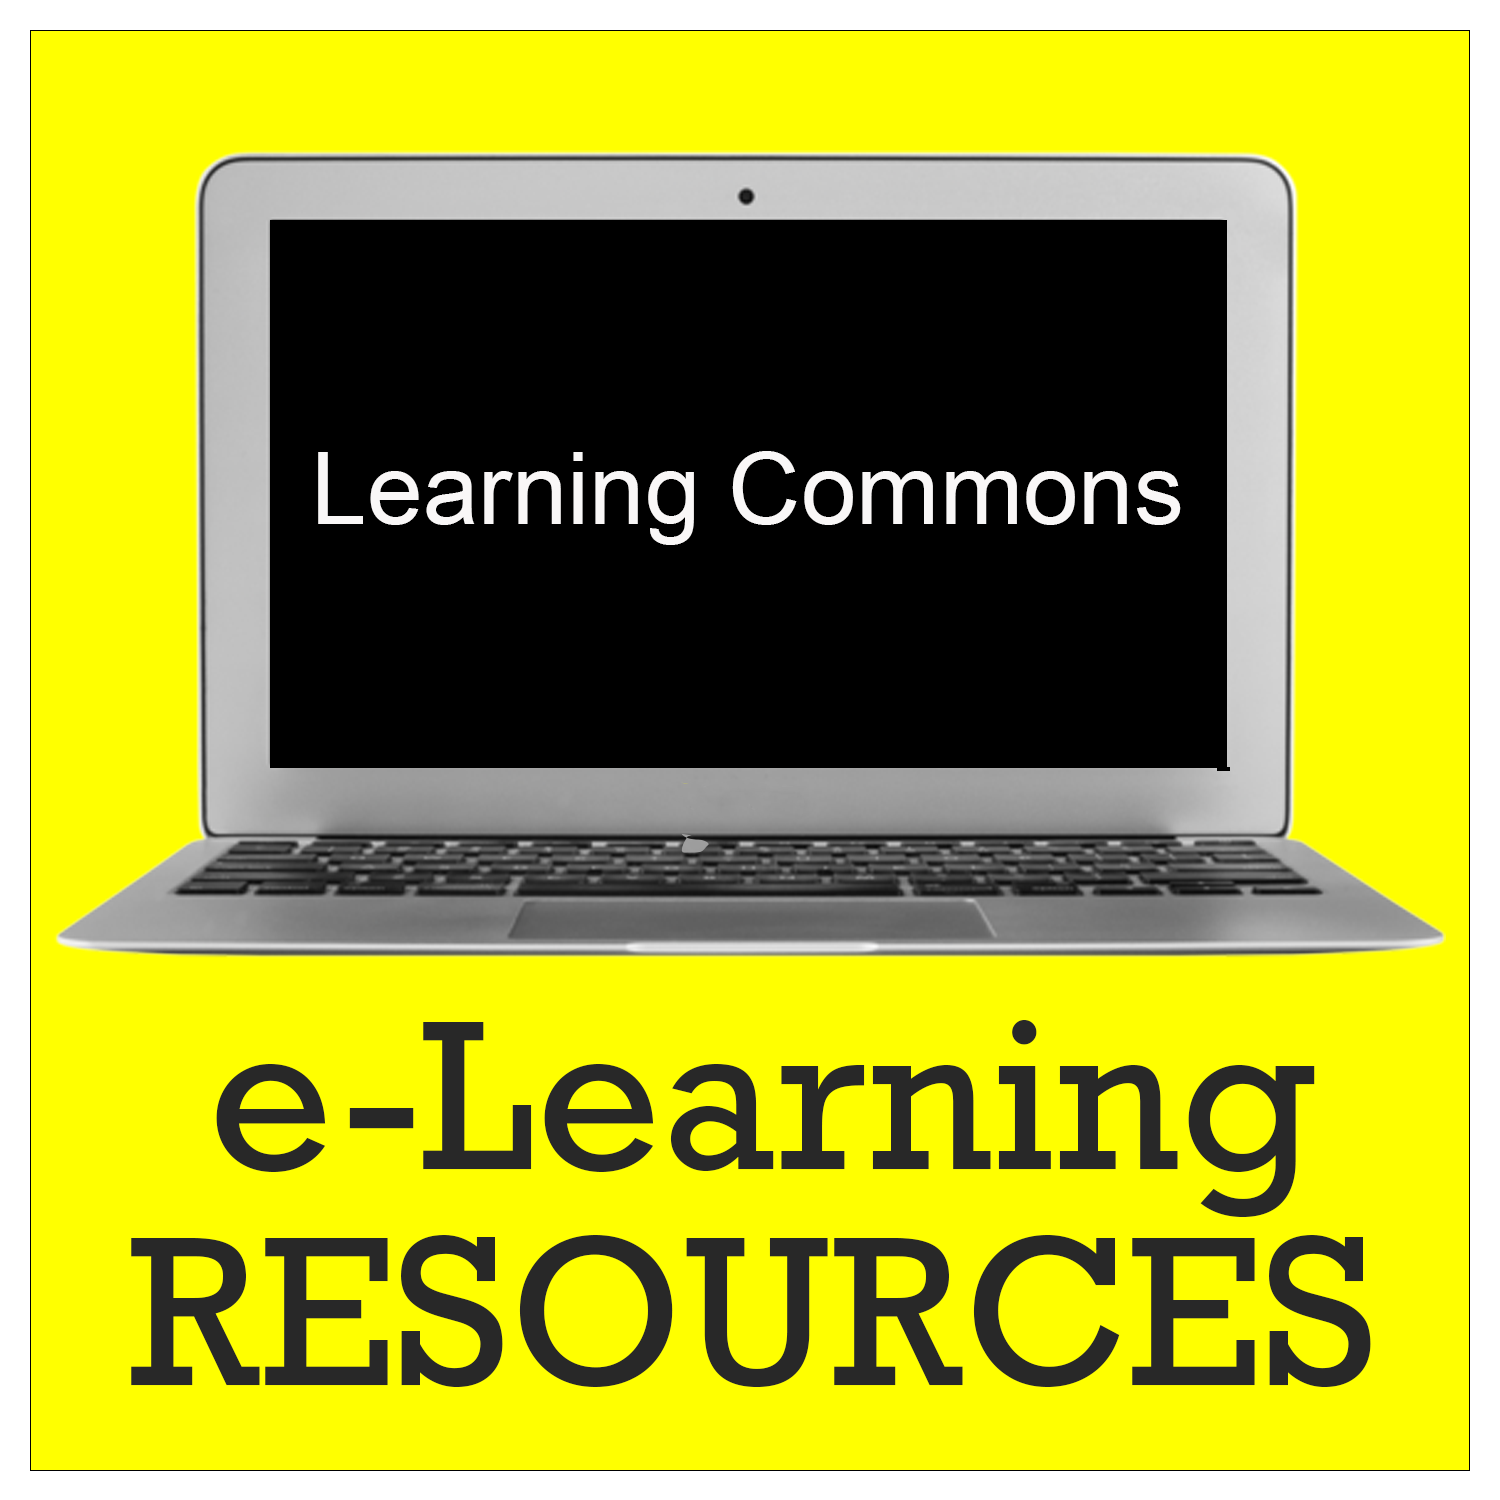 Learning Commons e-Learning Resources